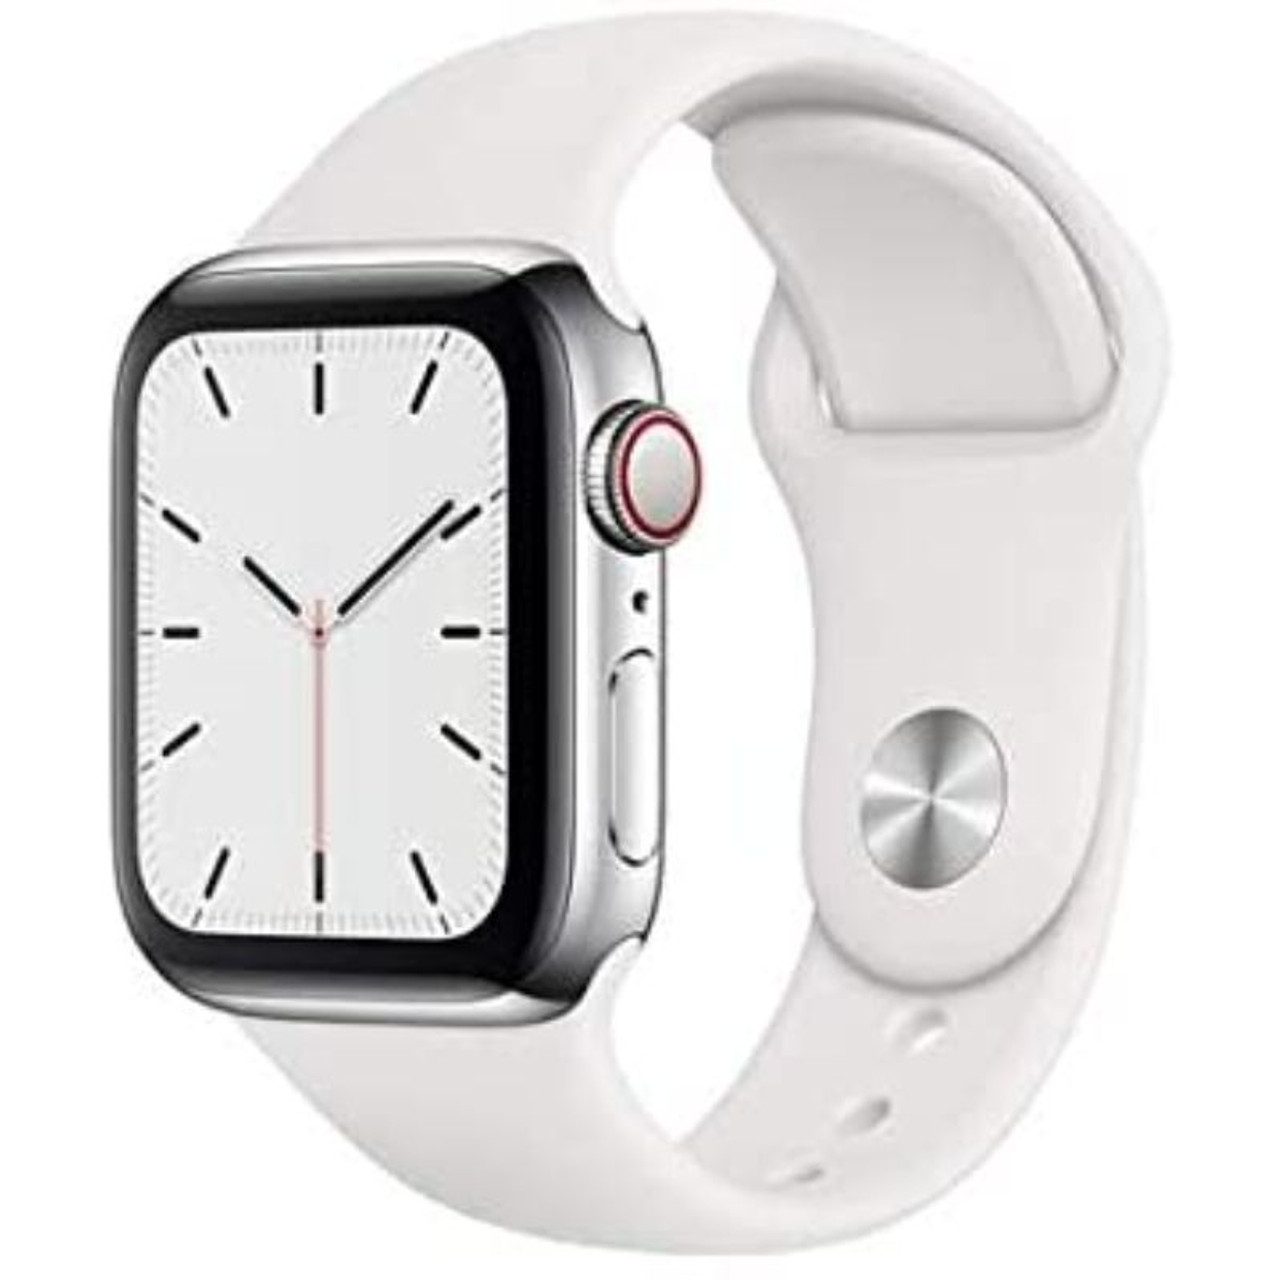 Apple Watch Series 5 44mm GPS and Cellular Stainless Steel Case